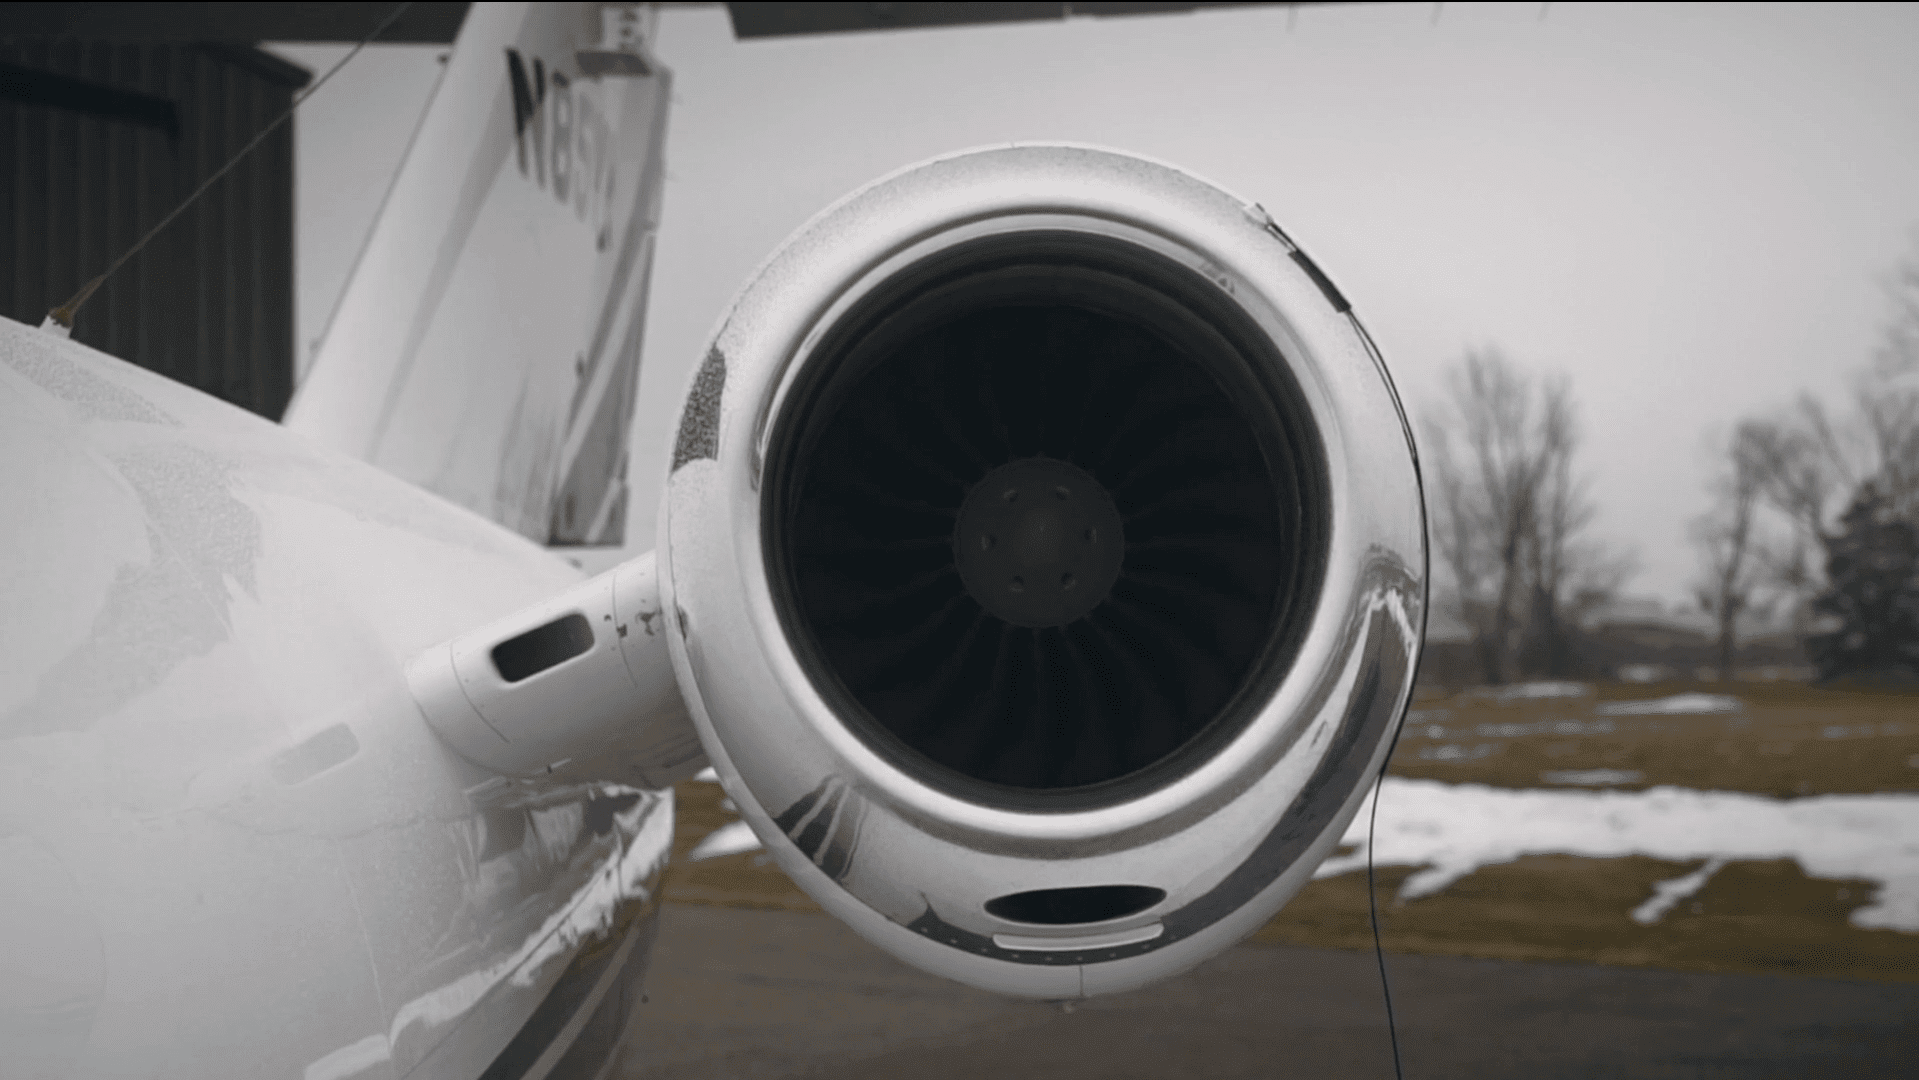 Airplane turbine with sensor attached